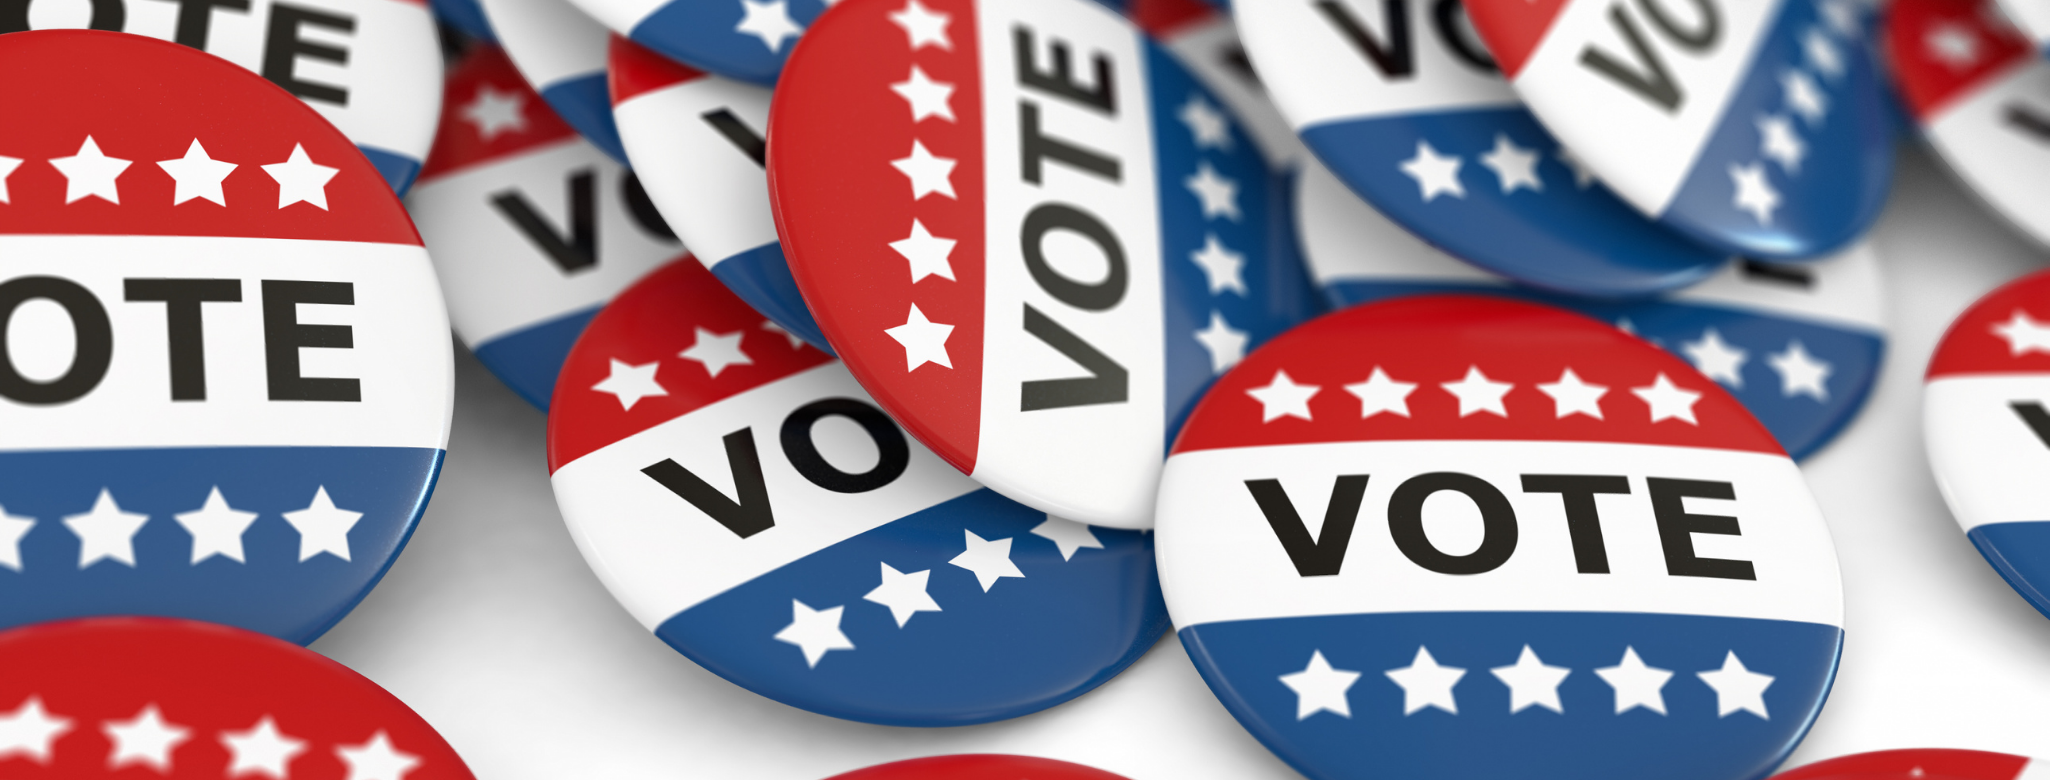 Cooke v. Illinois Board of Elections challenges improper use of campaign funds